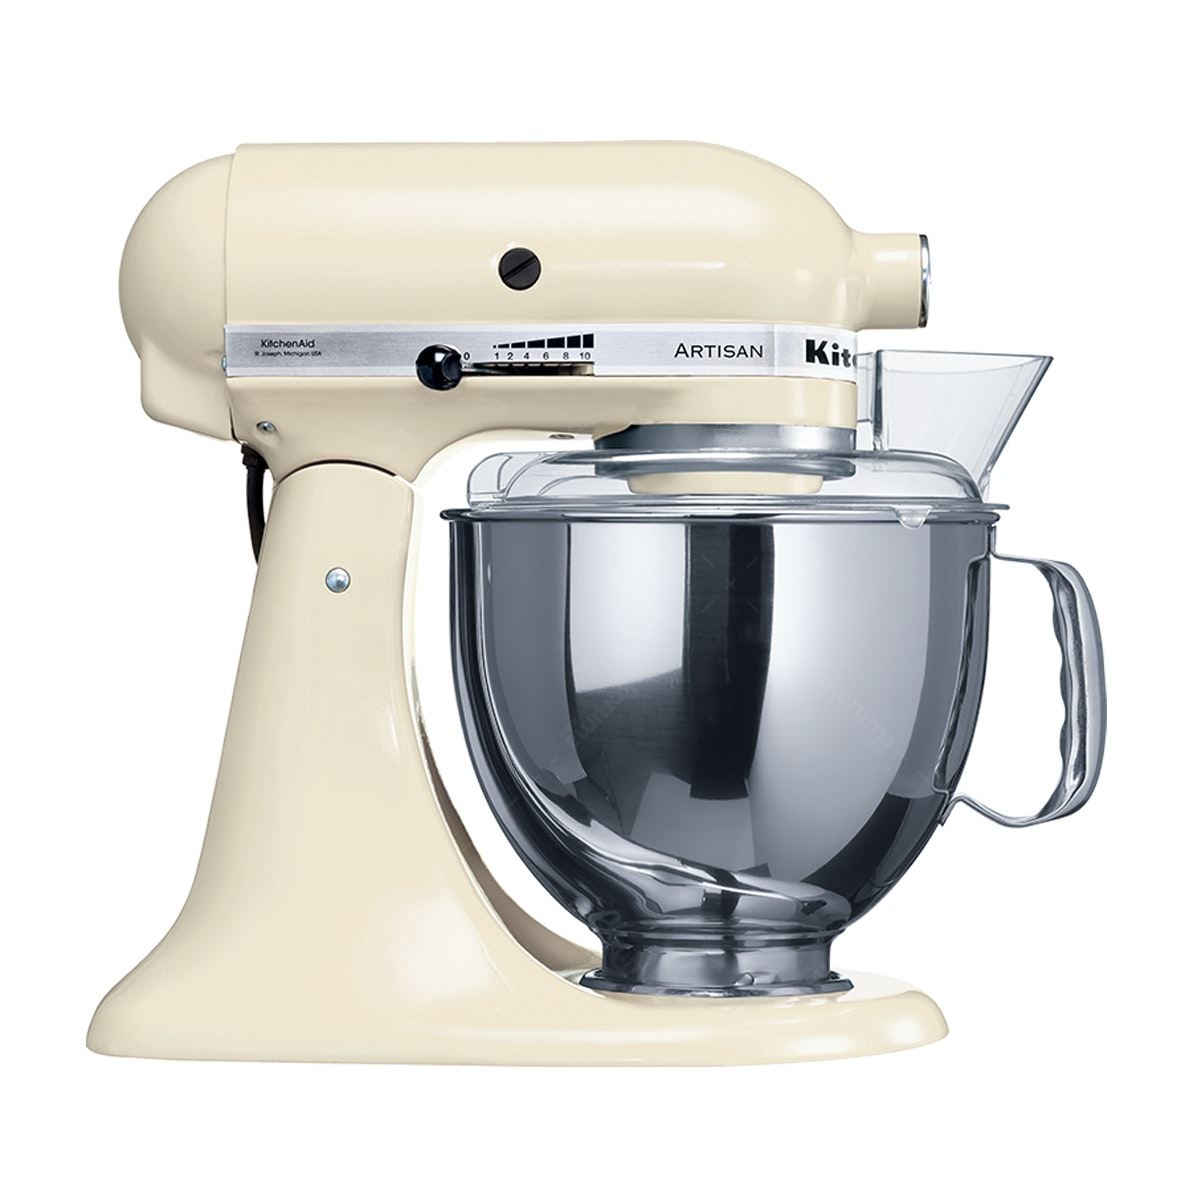 KitchenAid Artisan Series 4.8 L Stand Mixer (Almond Cream)